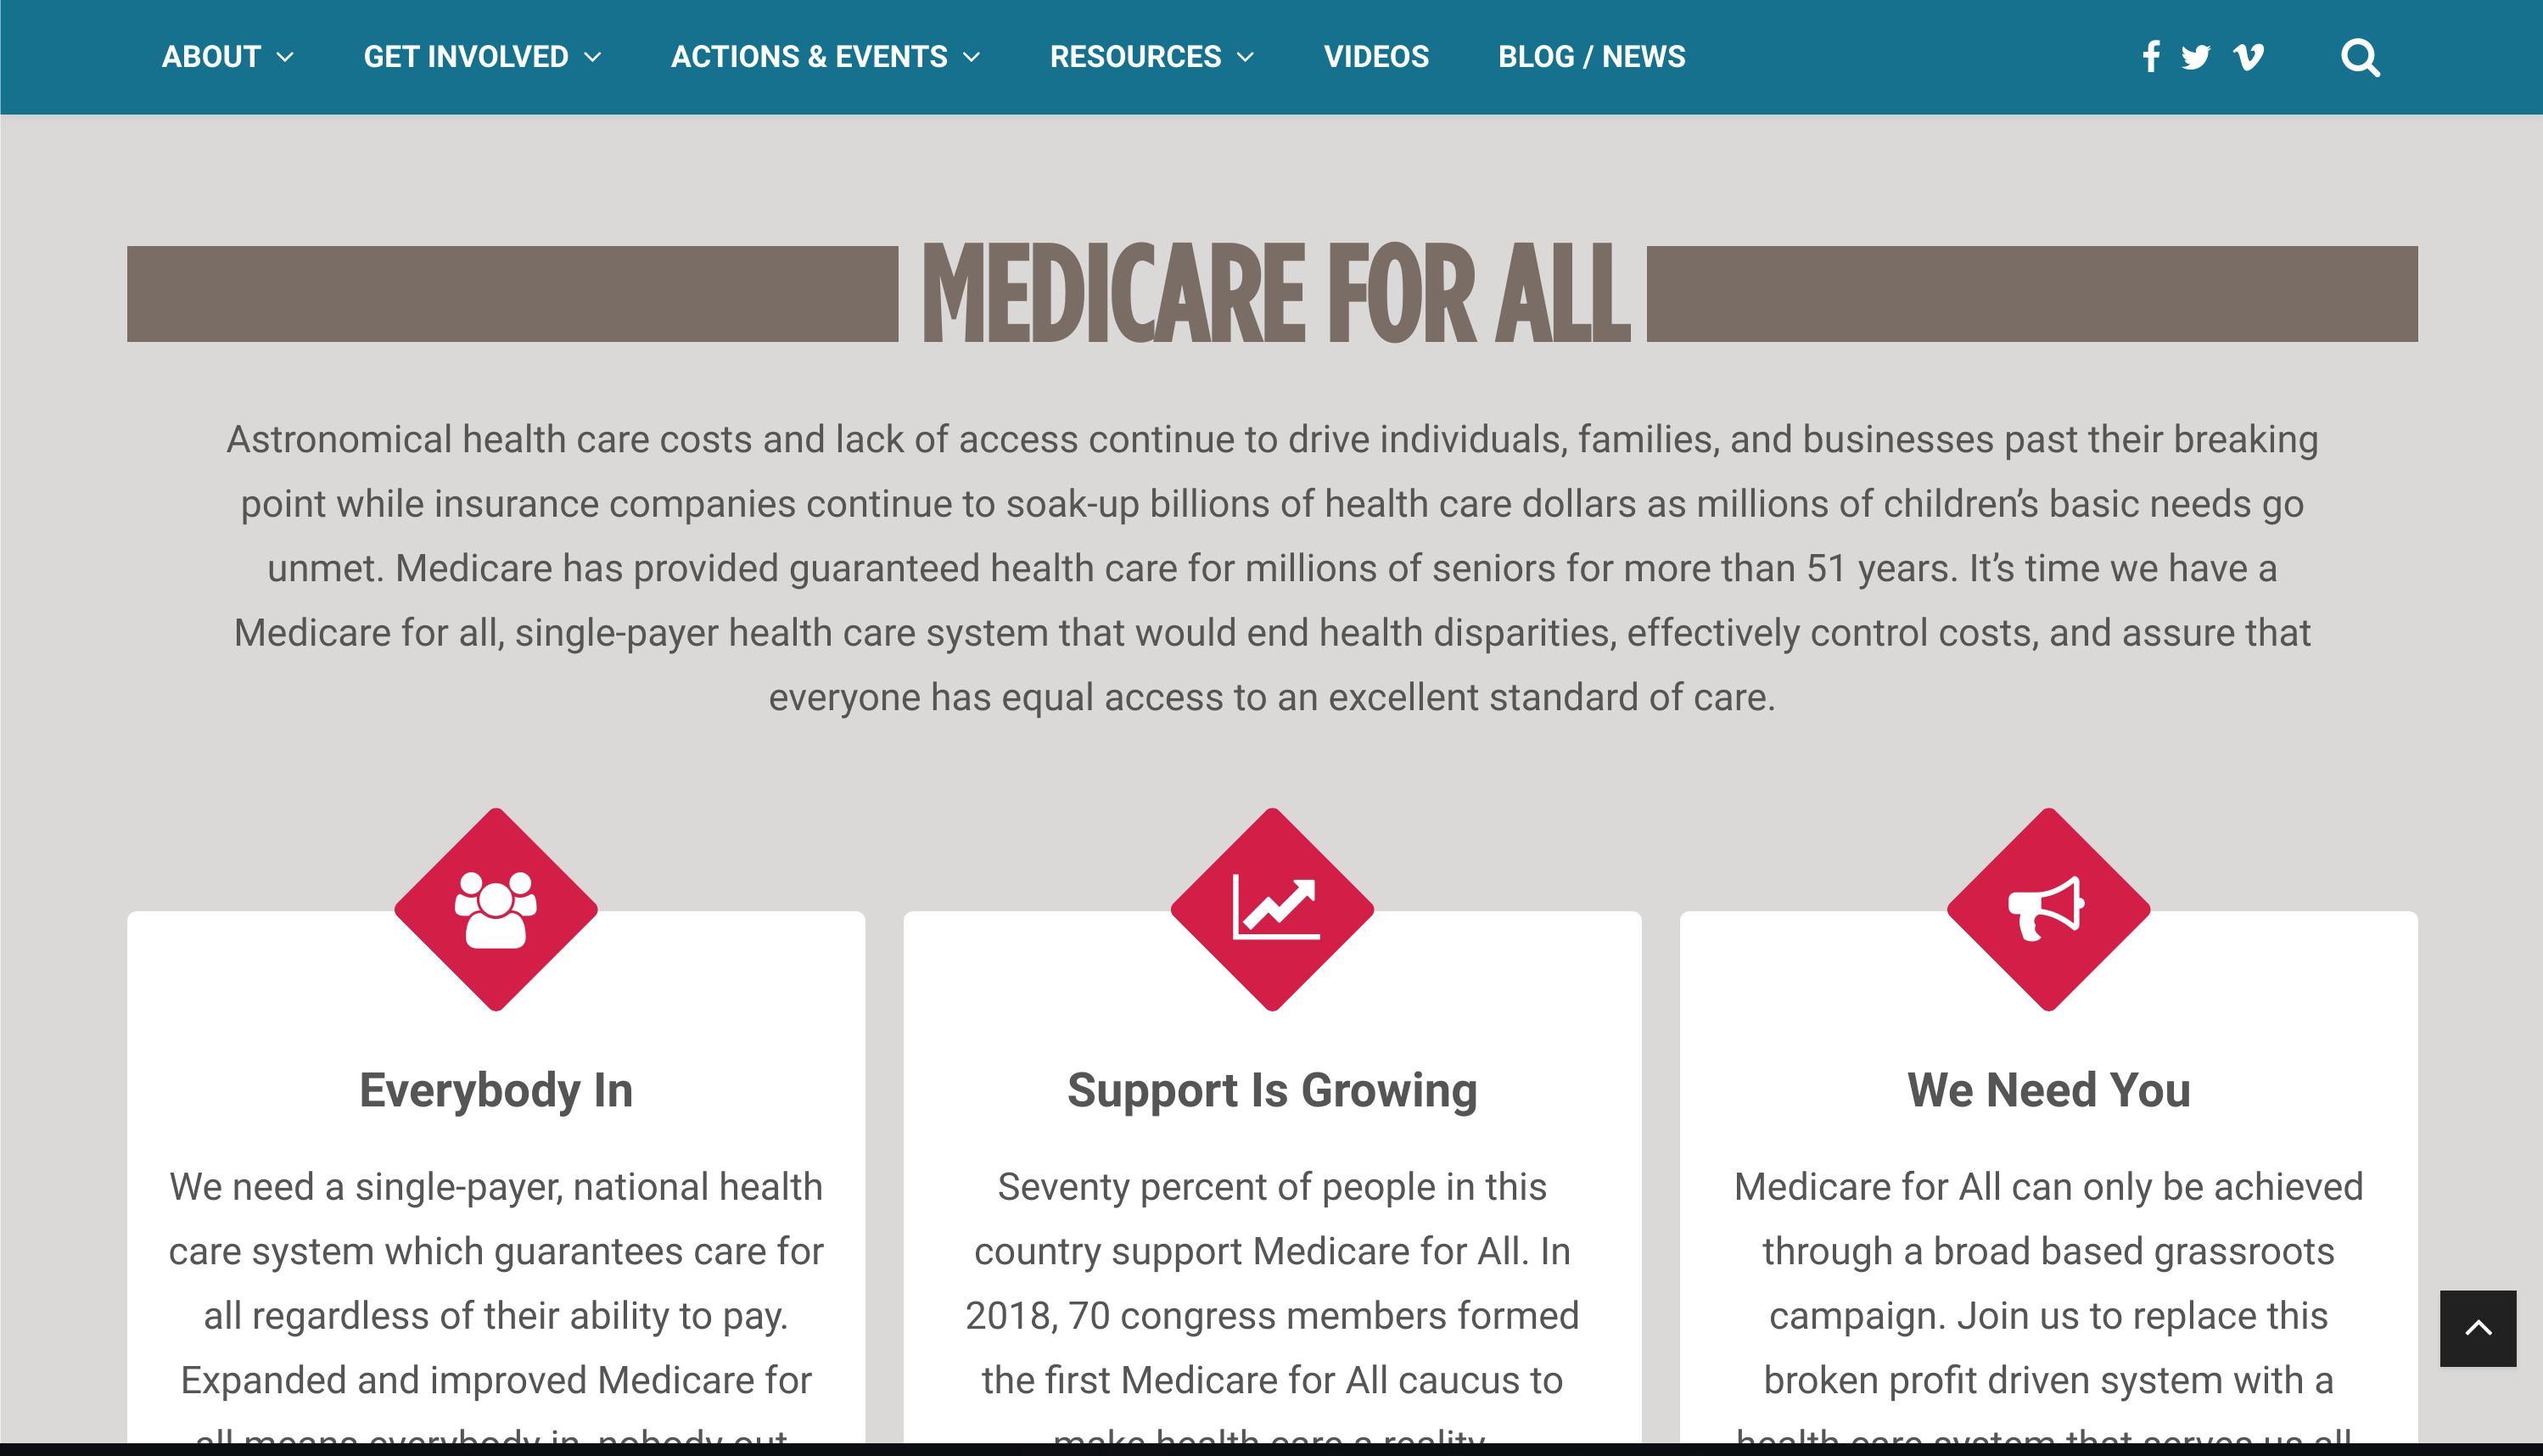 Medicare For All Medicare Healthcare System Health Care